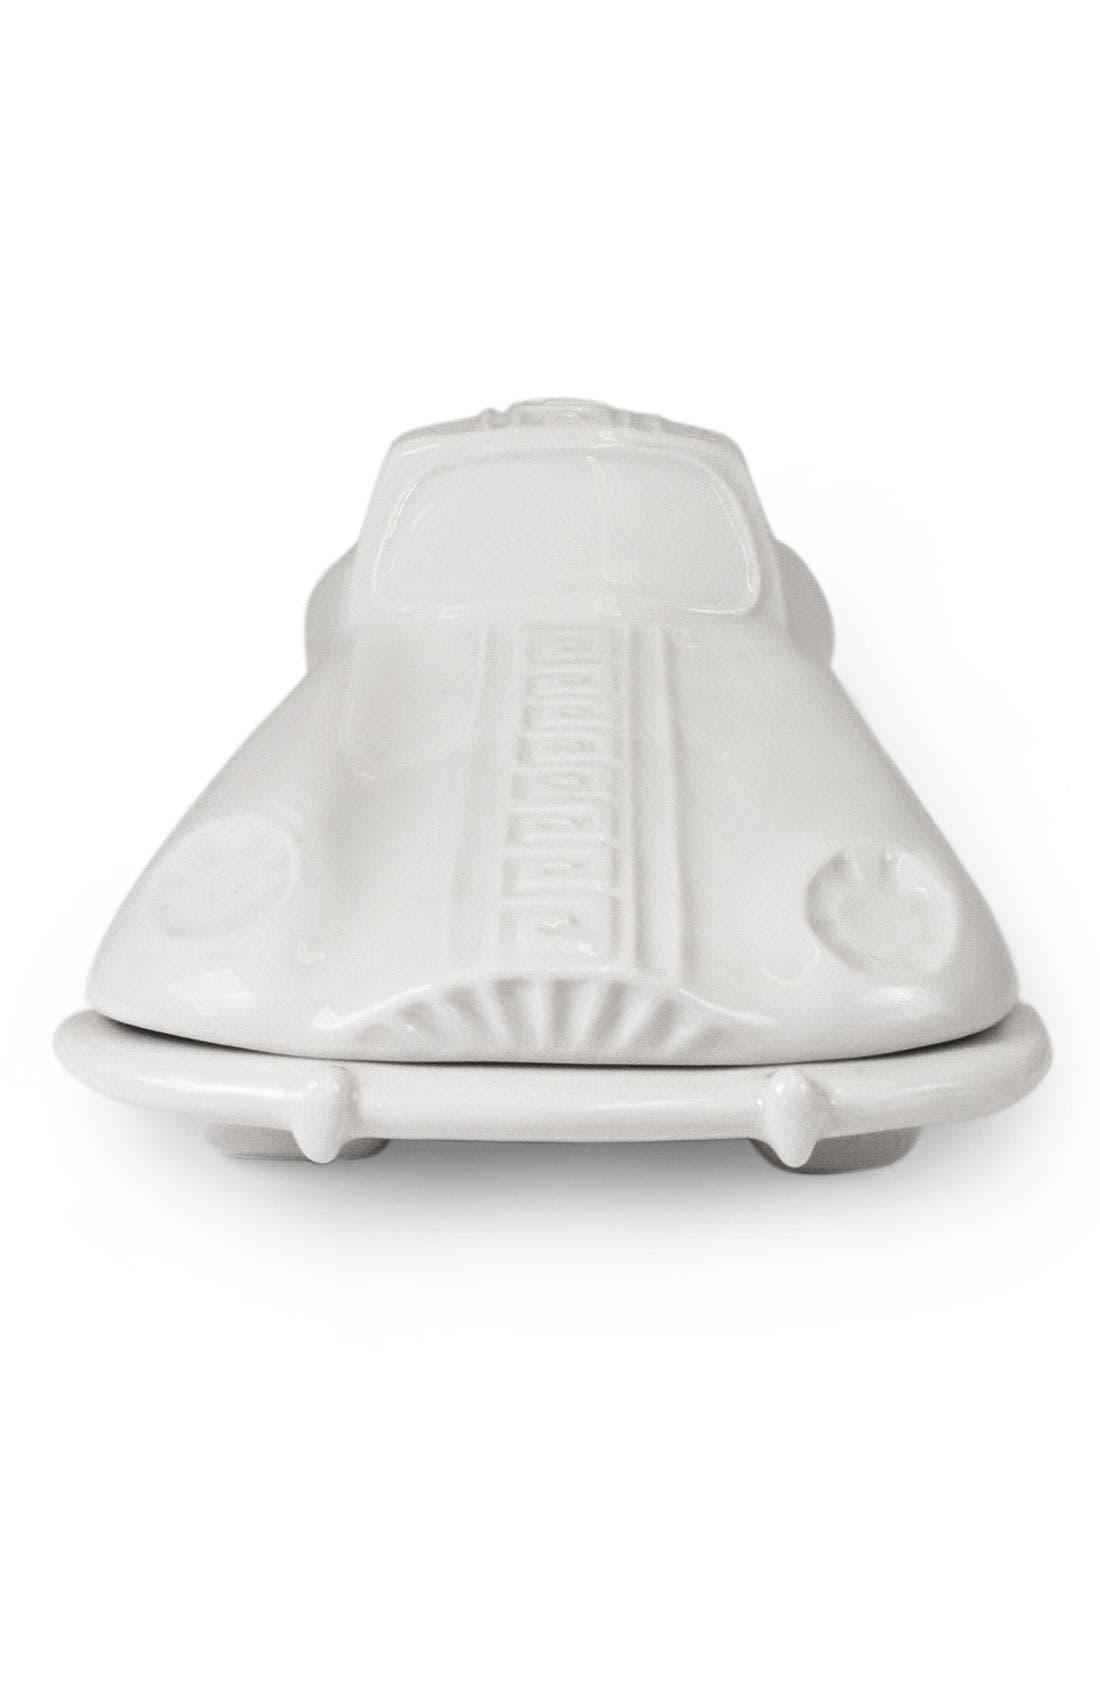 Alternate Image 2  - Jonathan Adler 'Sports Car' Porcelain Box